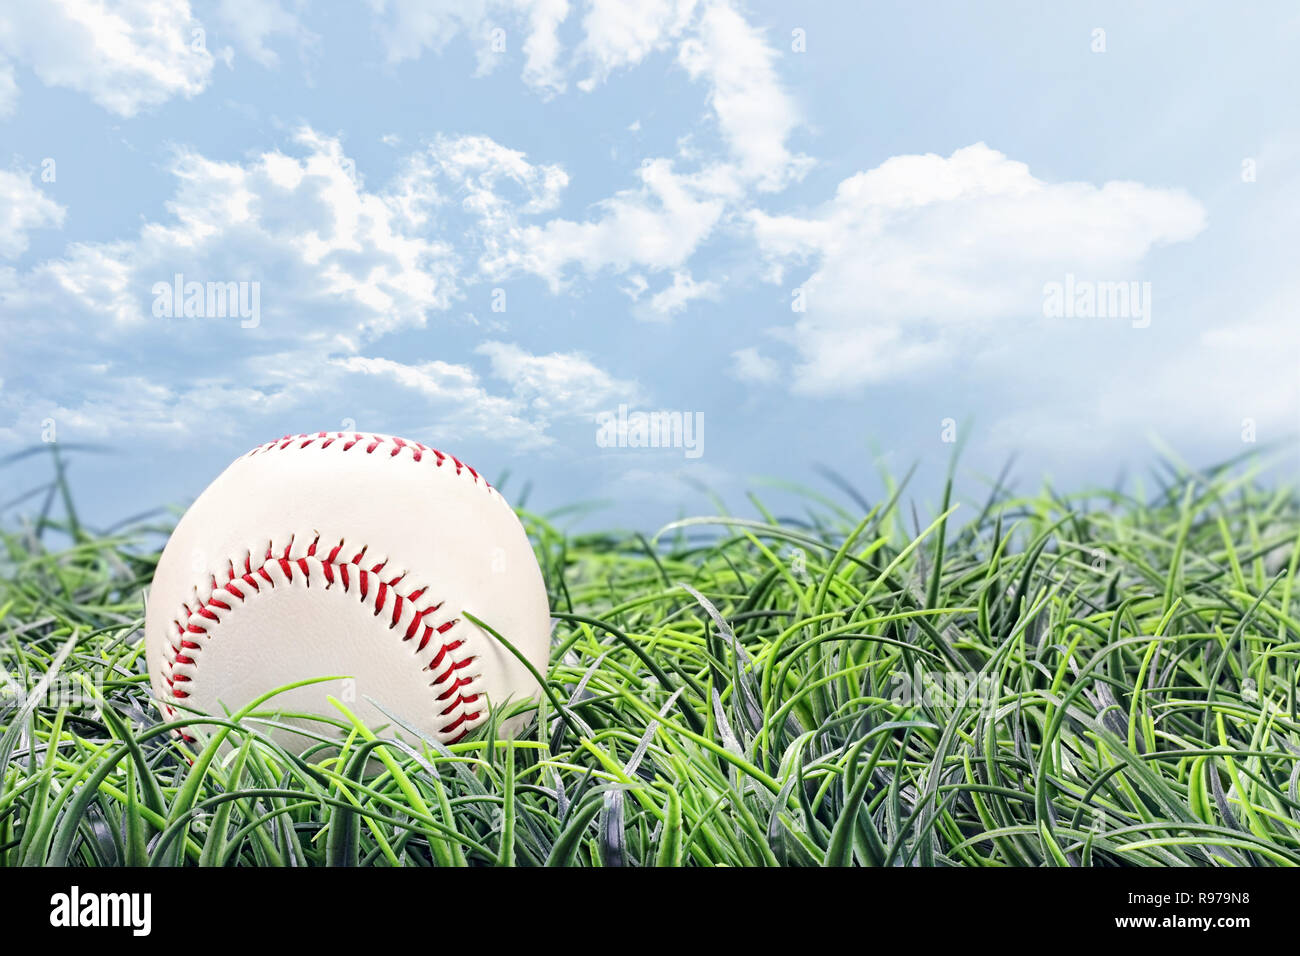 Baseball in lying in the grass on a beautiful summer day. Stock Photo